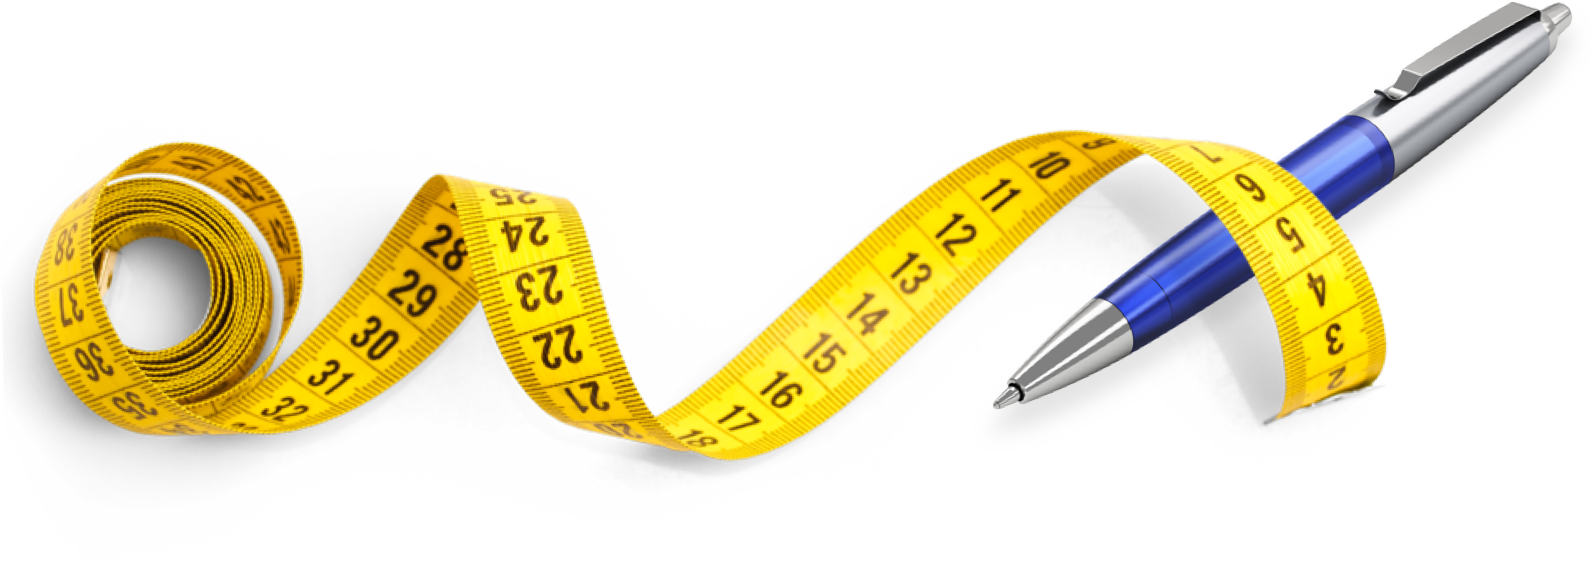 Measure PNG High Quality Image